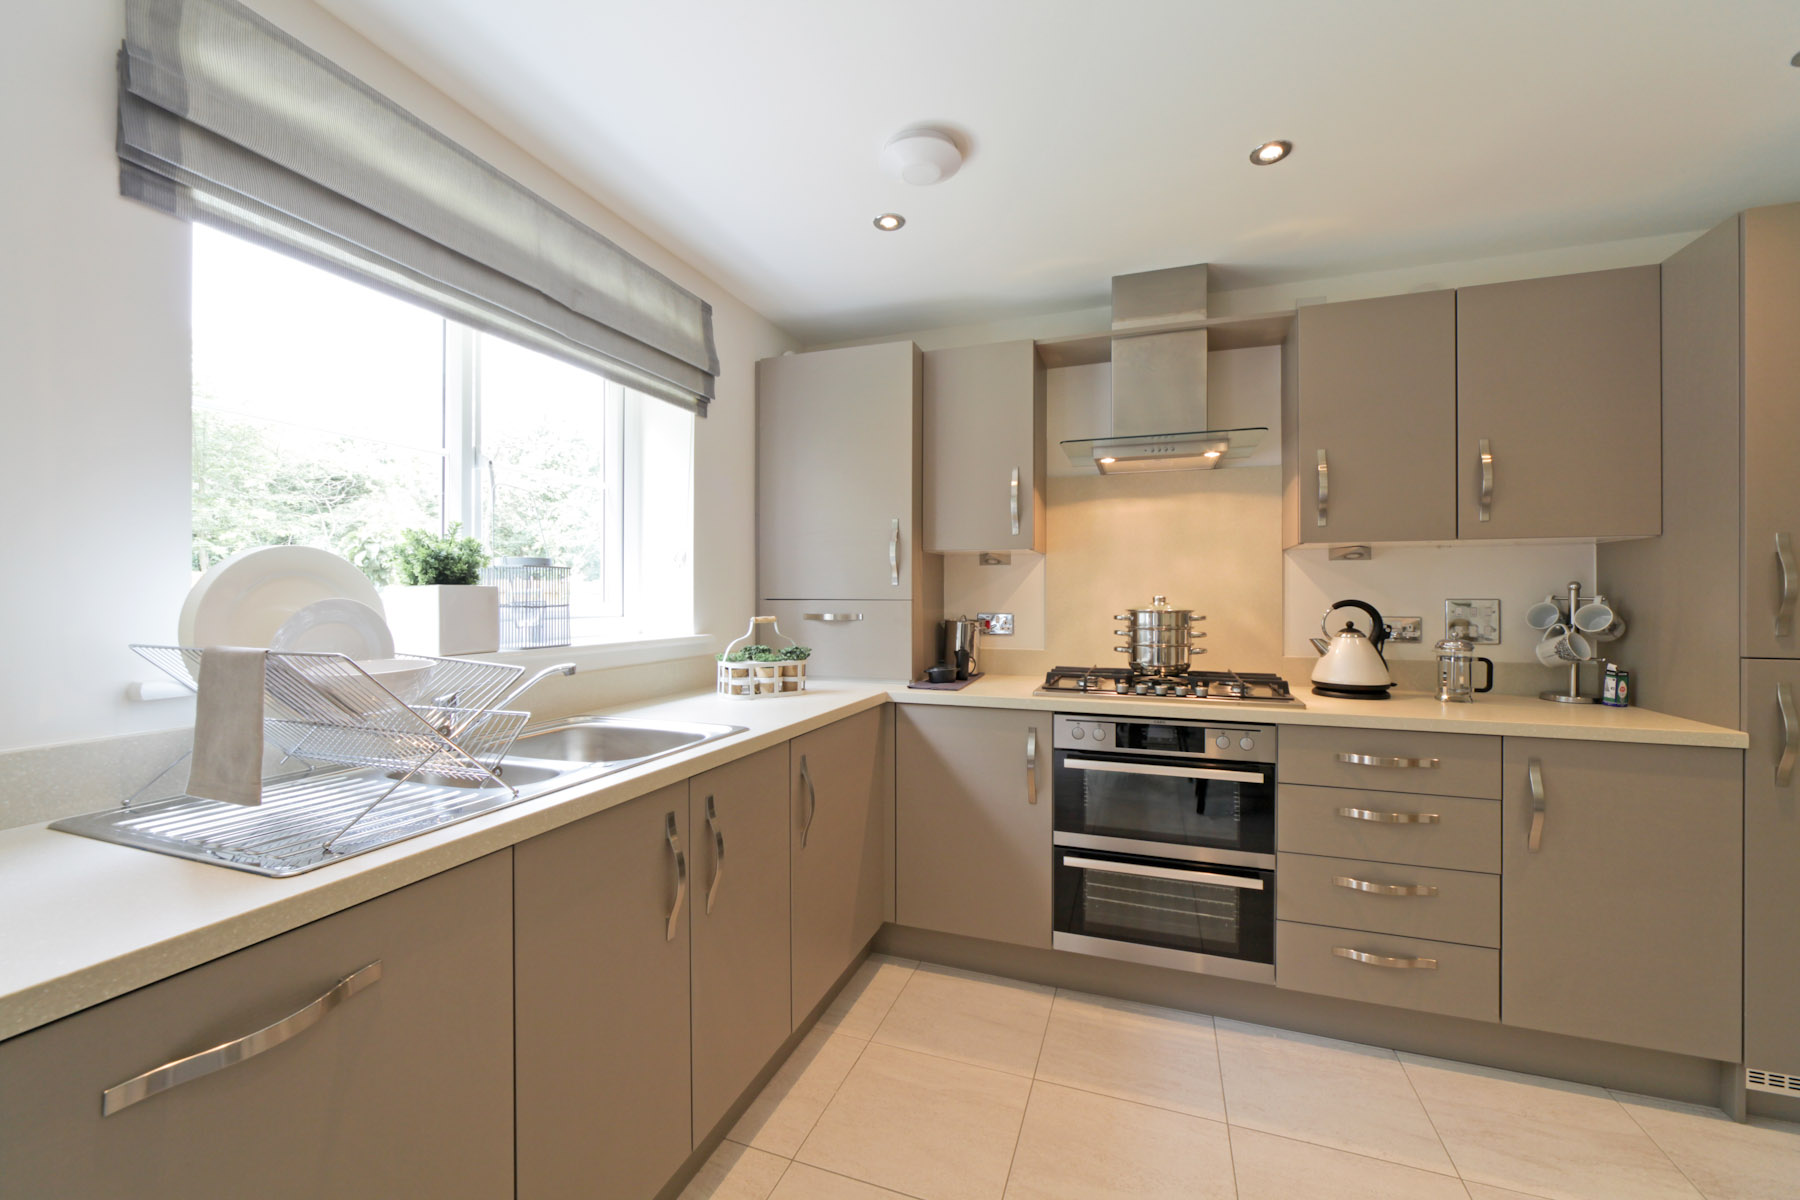 TW Exeter - Gwel An Hay - Midford example kitchen